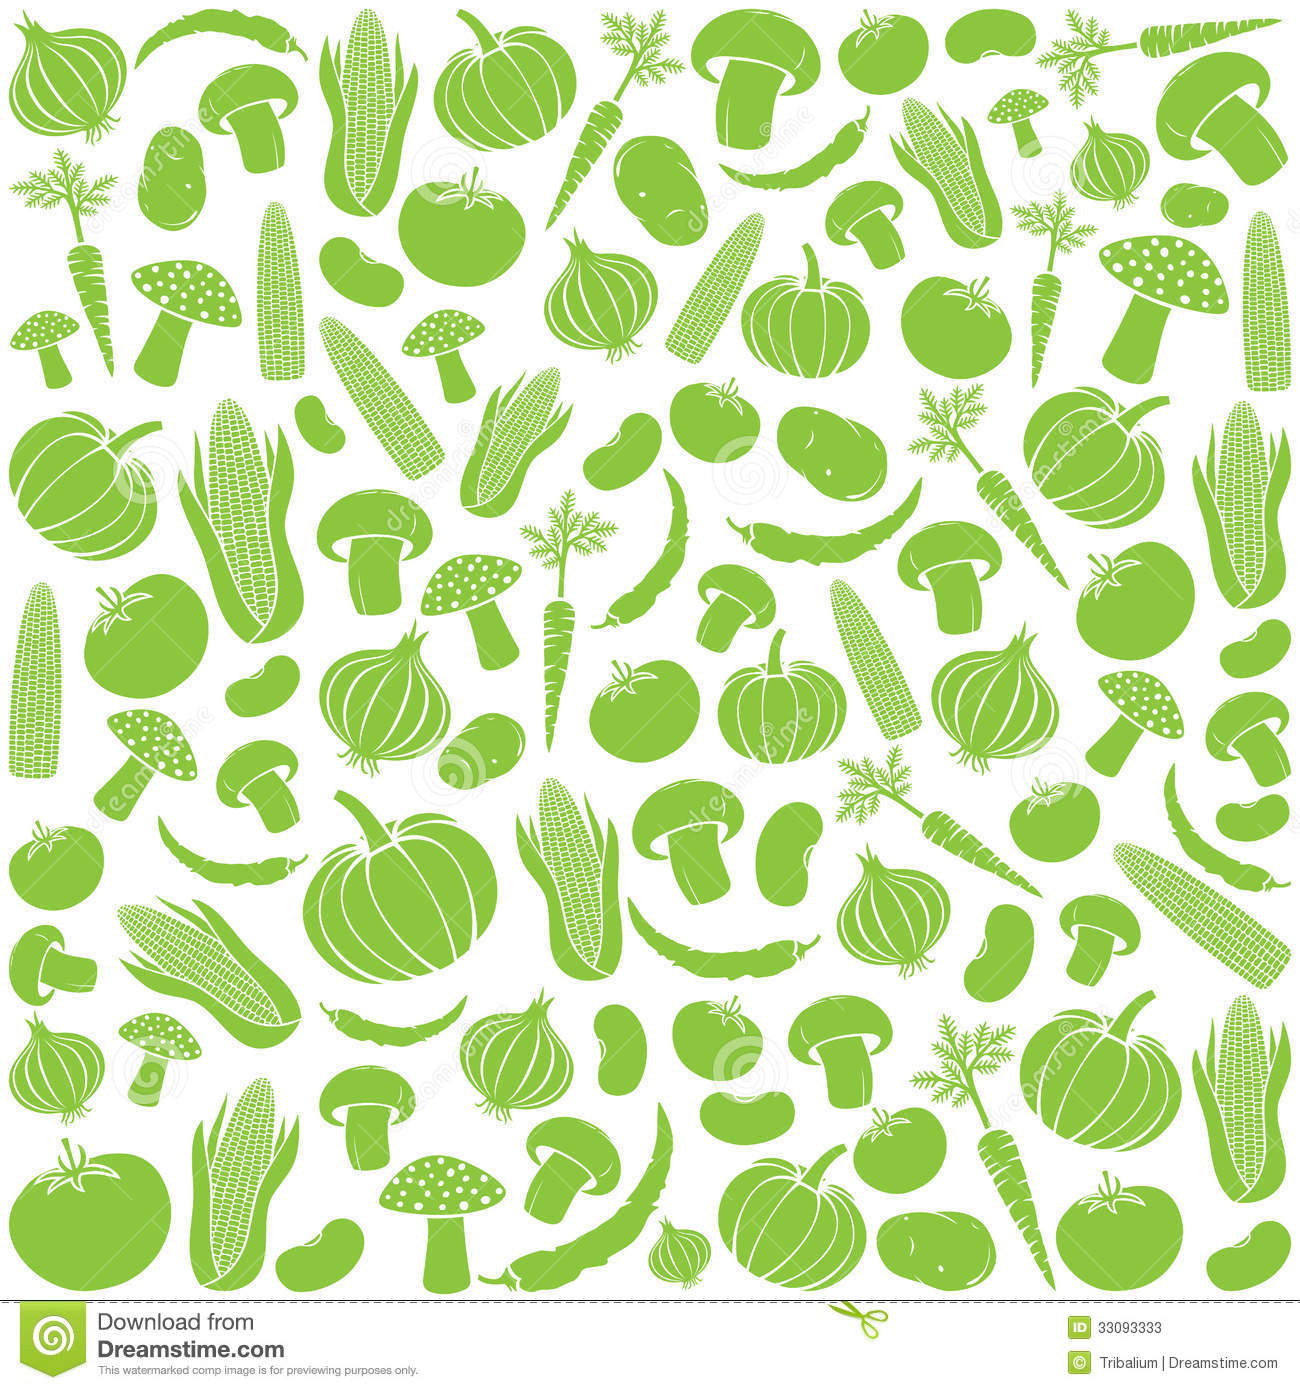 Vegetable pattern - photo#2